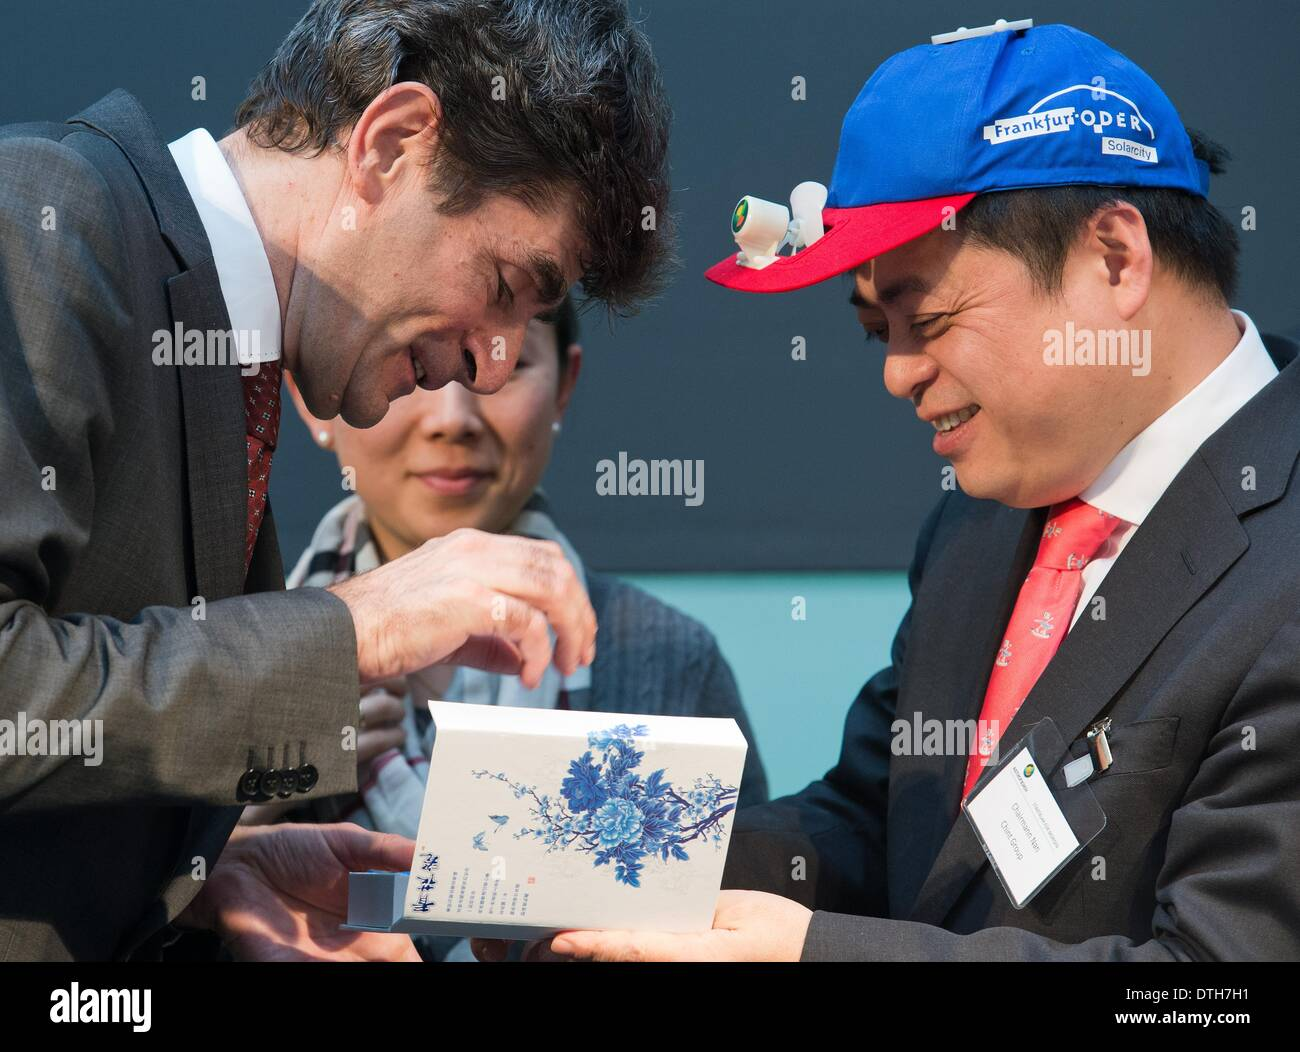 Frankfurt Oder, Germany. 18th Feb, 2014. Chint Group Manager Cunhui Nan (r) and mayor Martin Wilke (non-party) exchange presents at the opening of the solar plant of the Astronergy Solarmodule GmbH company in Frankfurt Oder, Germany, 18 February 2014. The Astronergy Solarmodule GmbH took over the module factory of insolvent solar company Conergy in early 2014. Astronergy is part of the worldwide operating Chint Group. Photo: Patrick Pleul/ZB/dpa/Alamy Live News - Stock Image